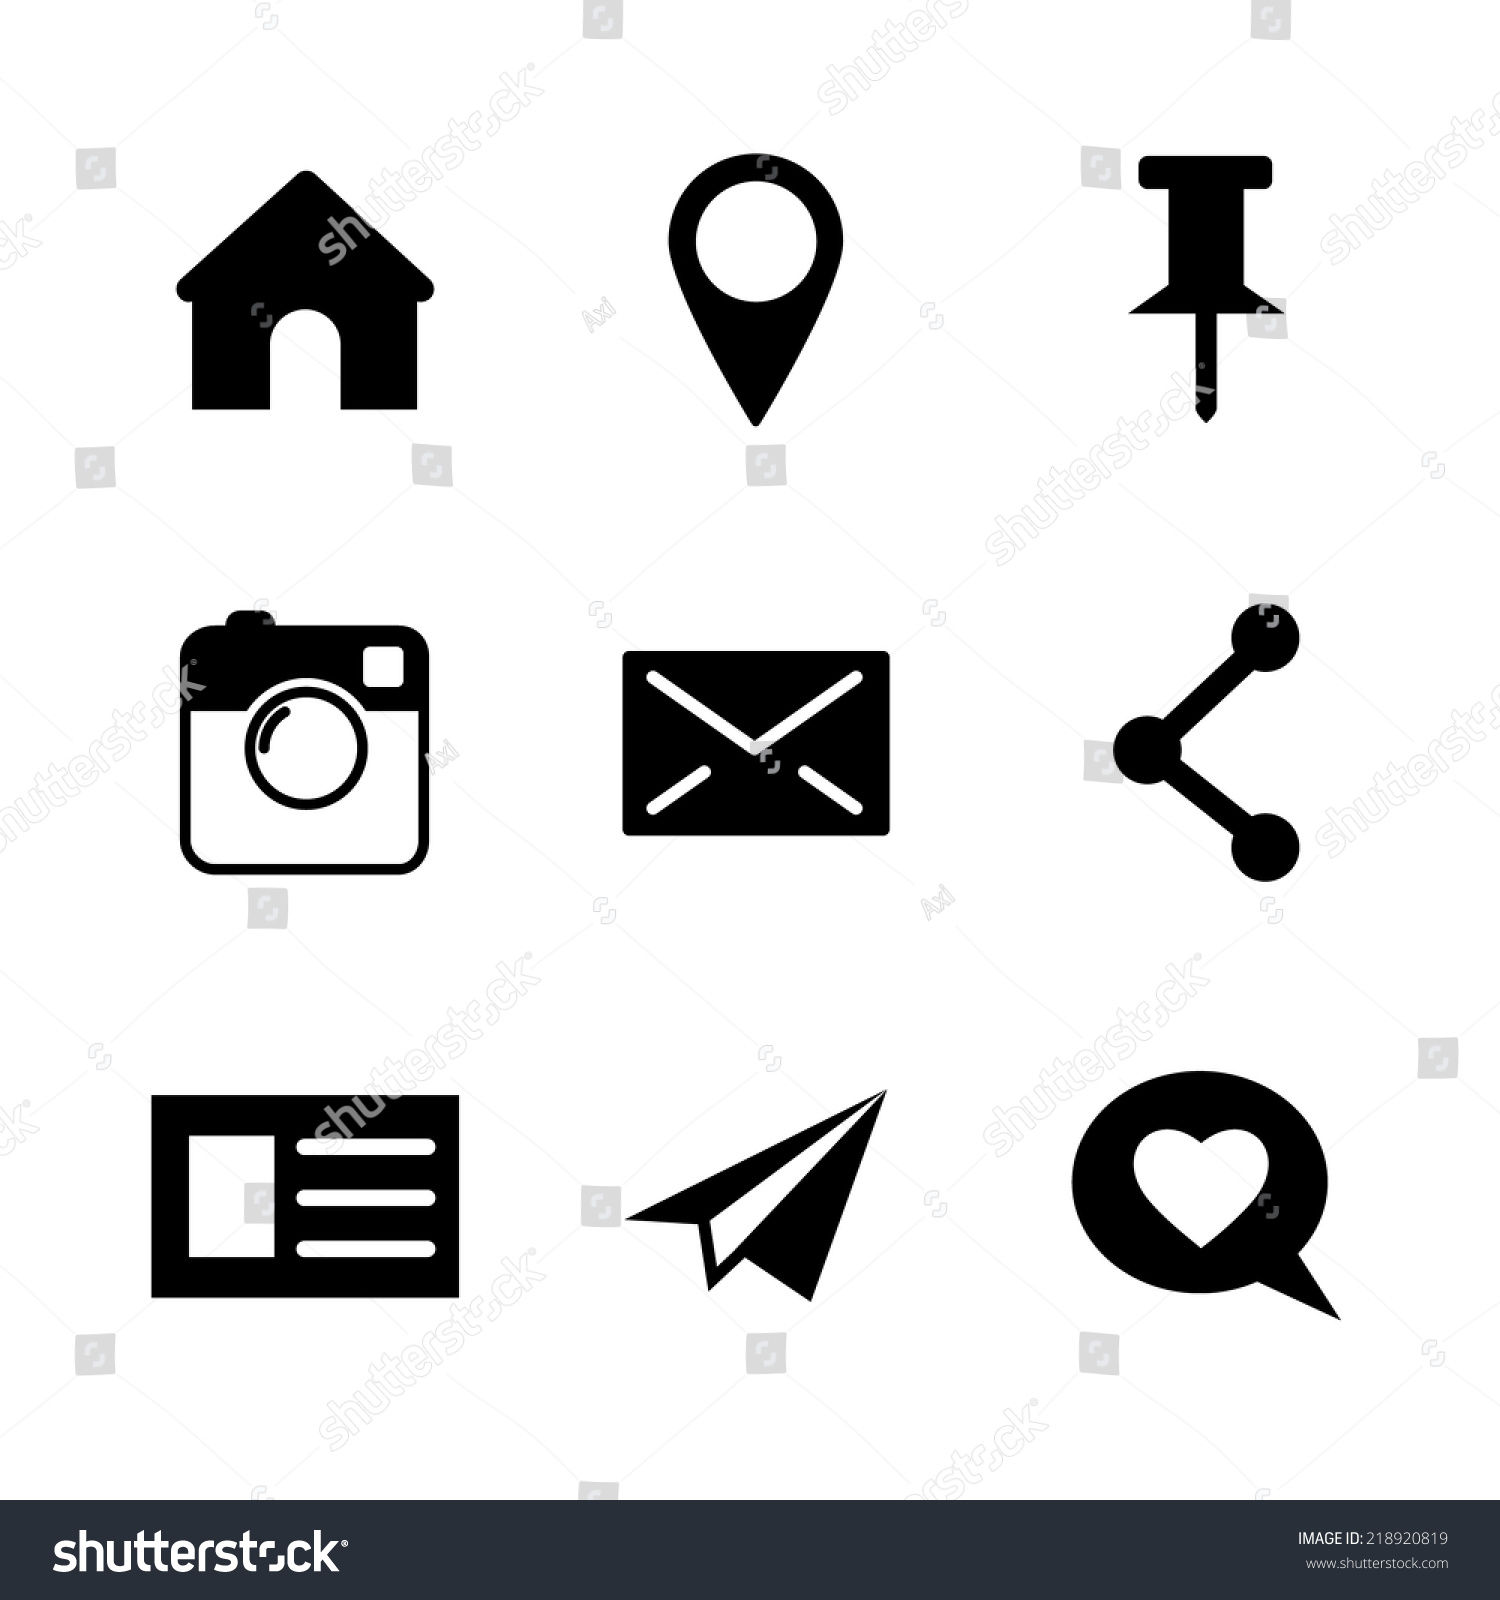 Set Of Vector Social Network Icons Isolated On White